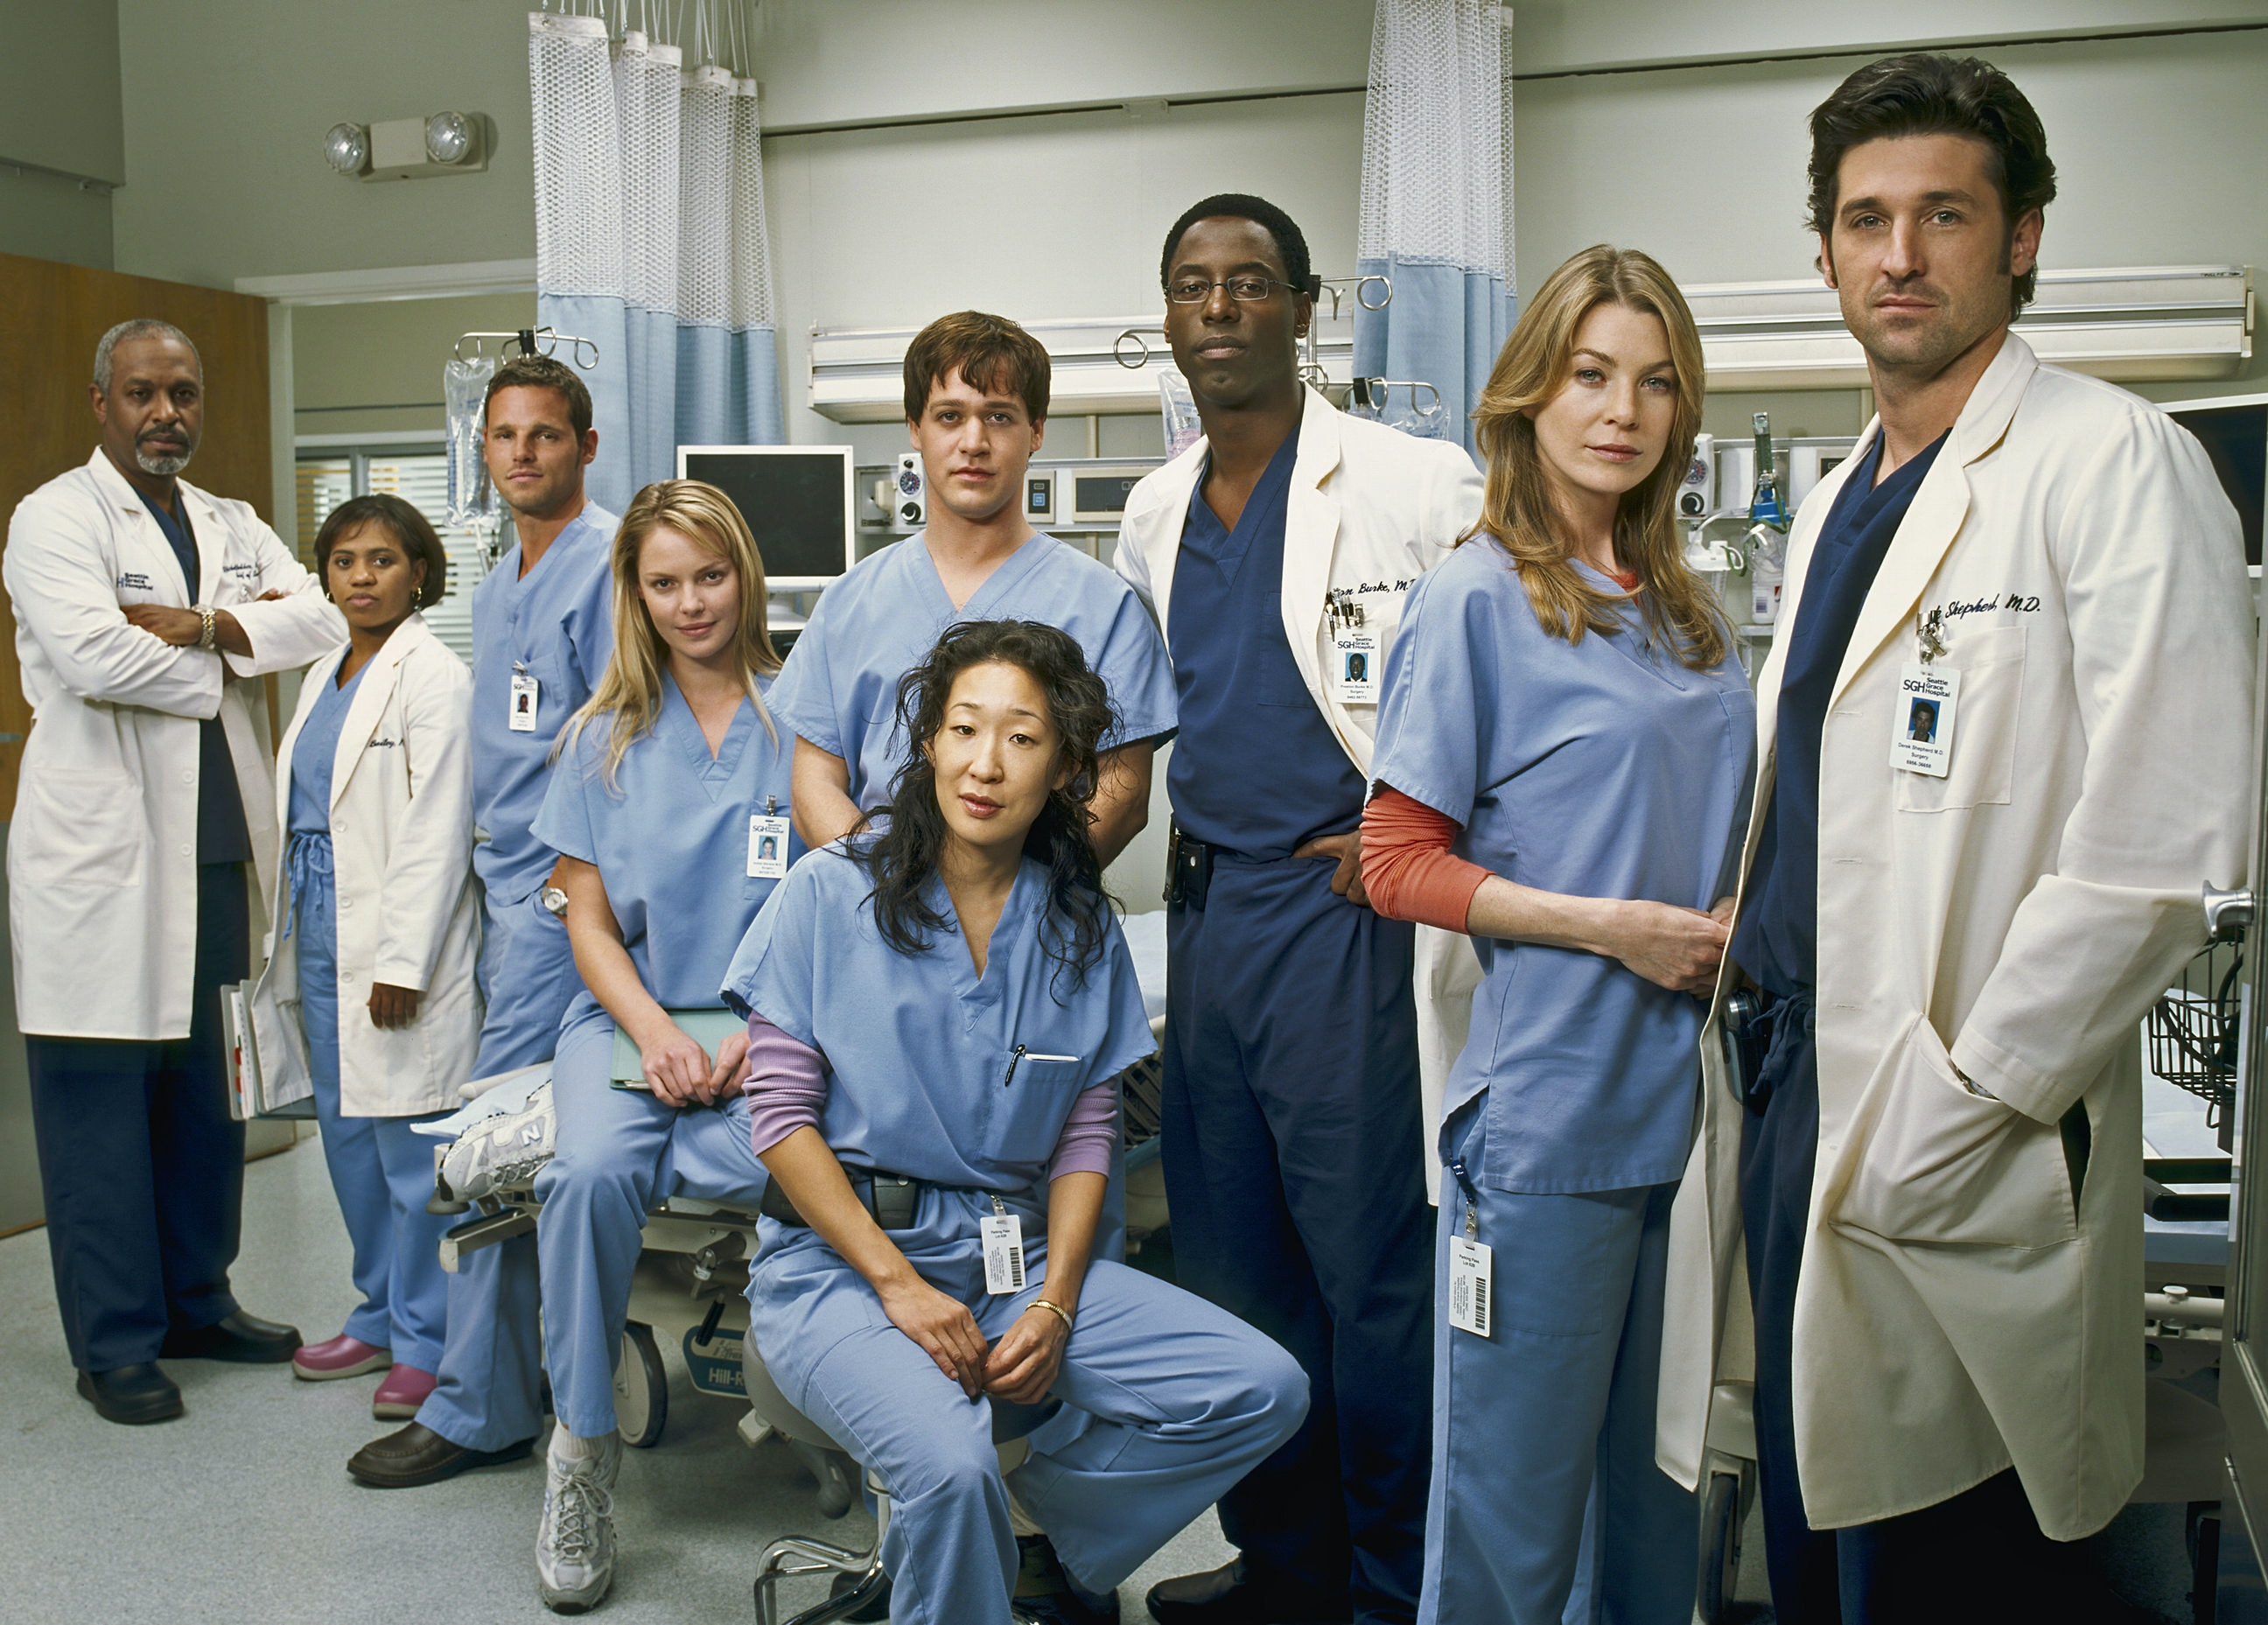 Music In Greys Anatomy Season 1 How Many Have You Listened To